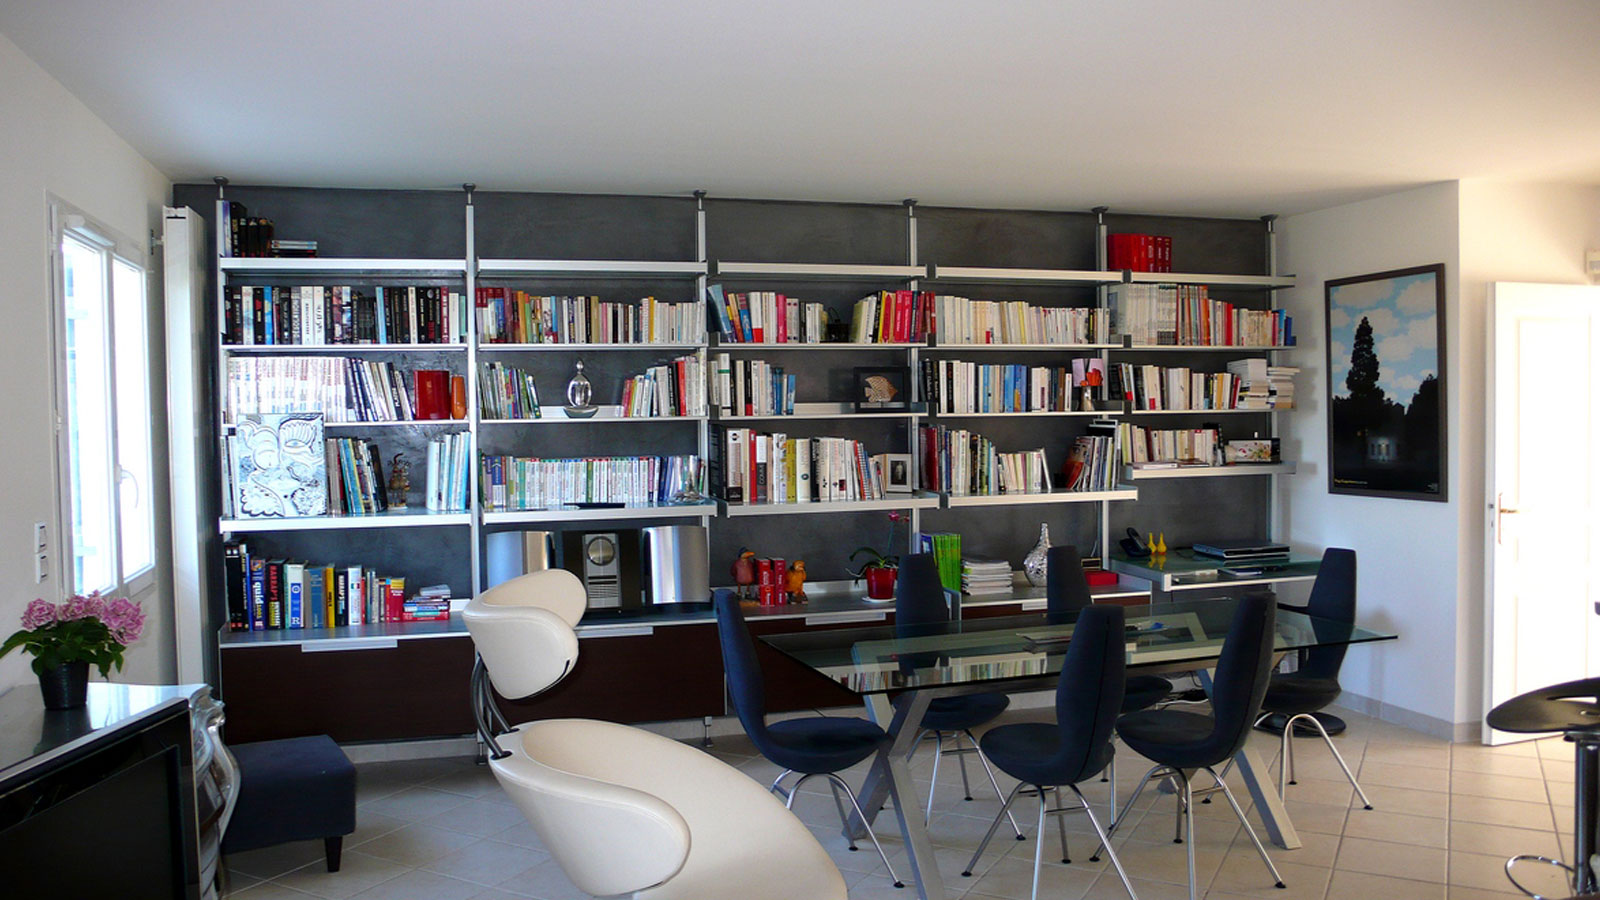 Architecte d 39 interieur nice rodolphe douillet architectes for Architecte interieur nice